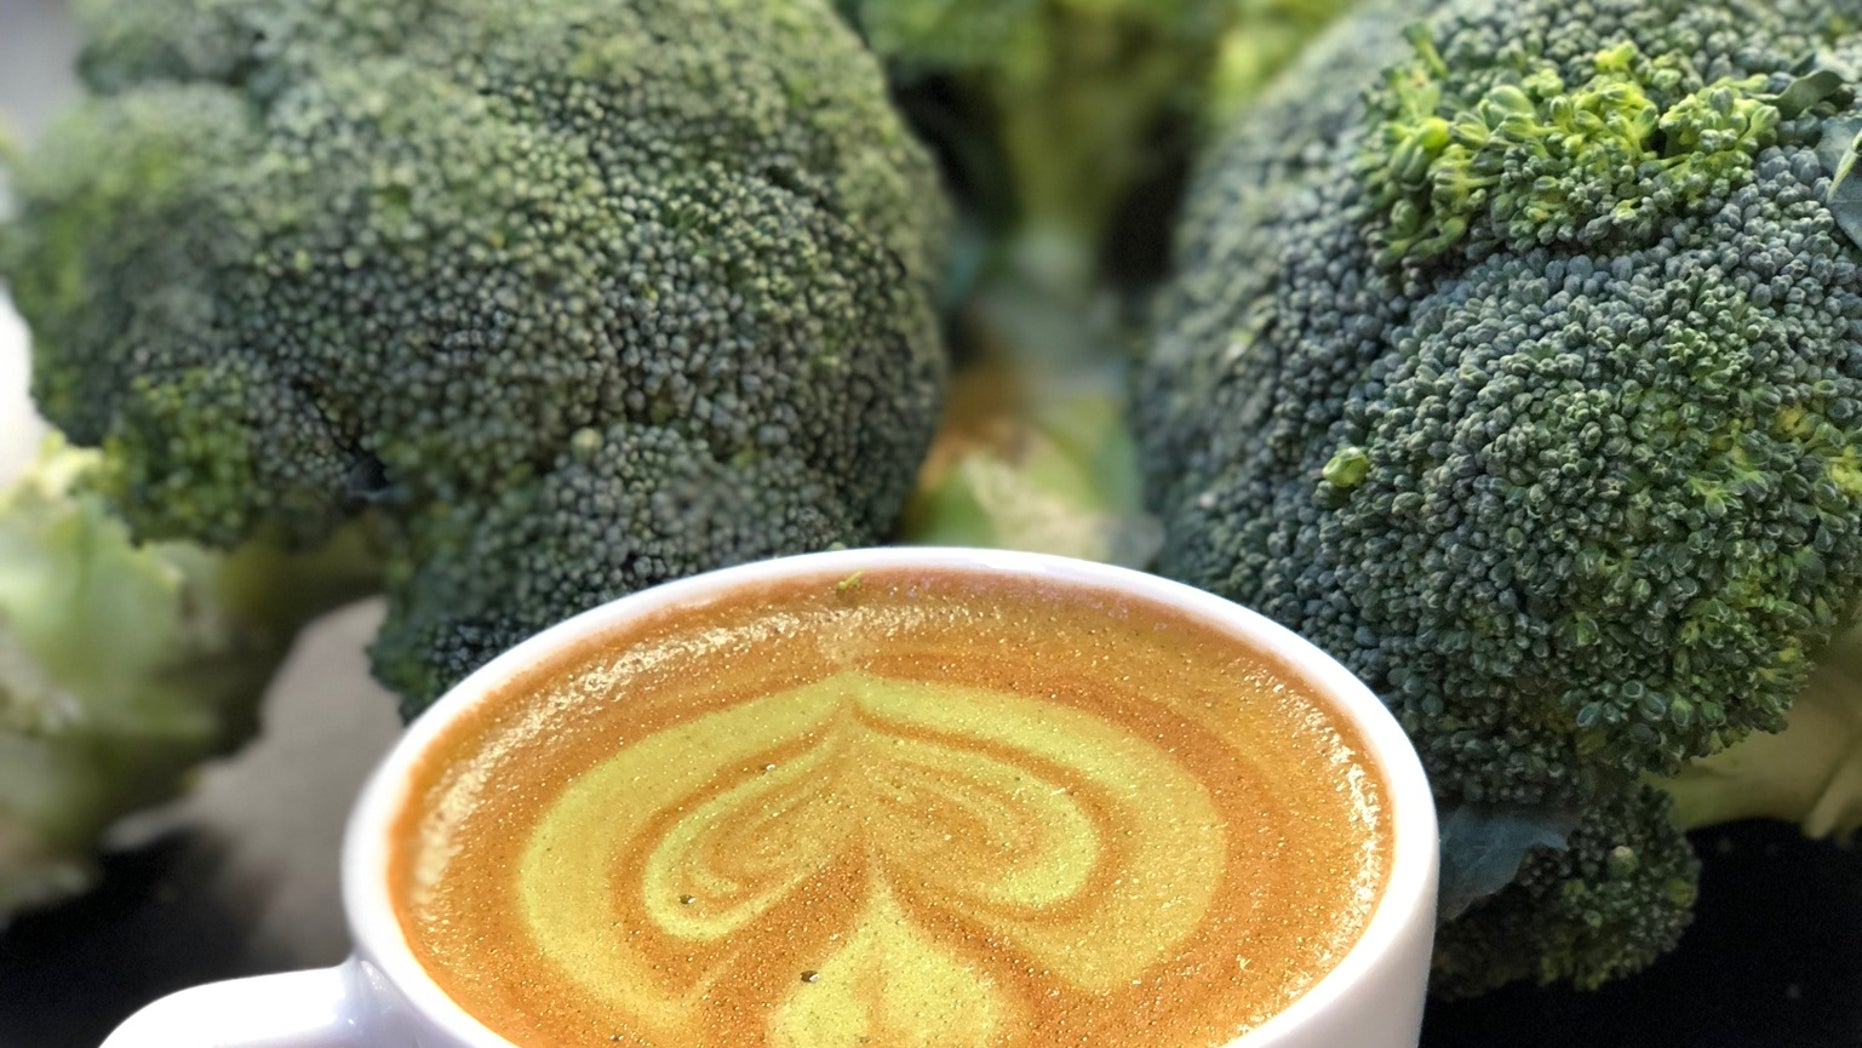 An Australian government agency partnered with a horticultural group to create a powdered broccoli product that can be made into coffee drinks.